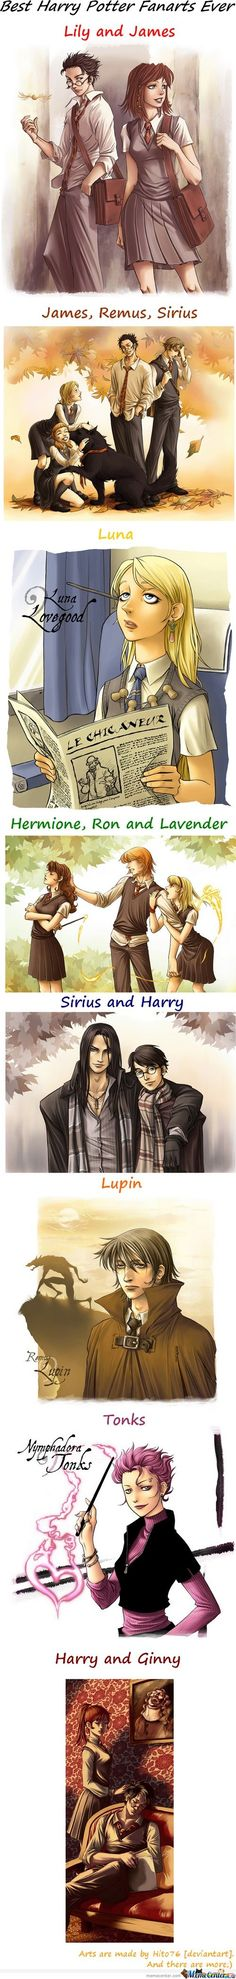 Harry Potter fanarts by Hito76 (deviantart)